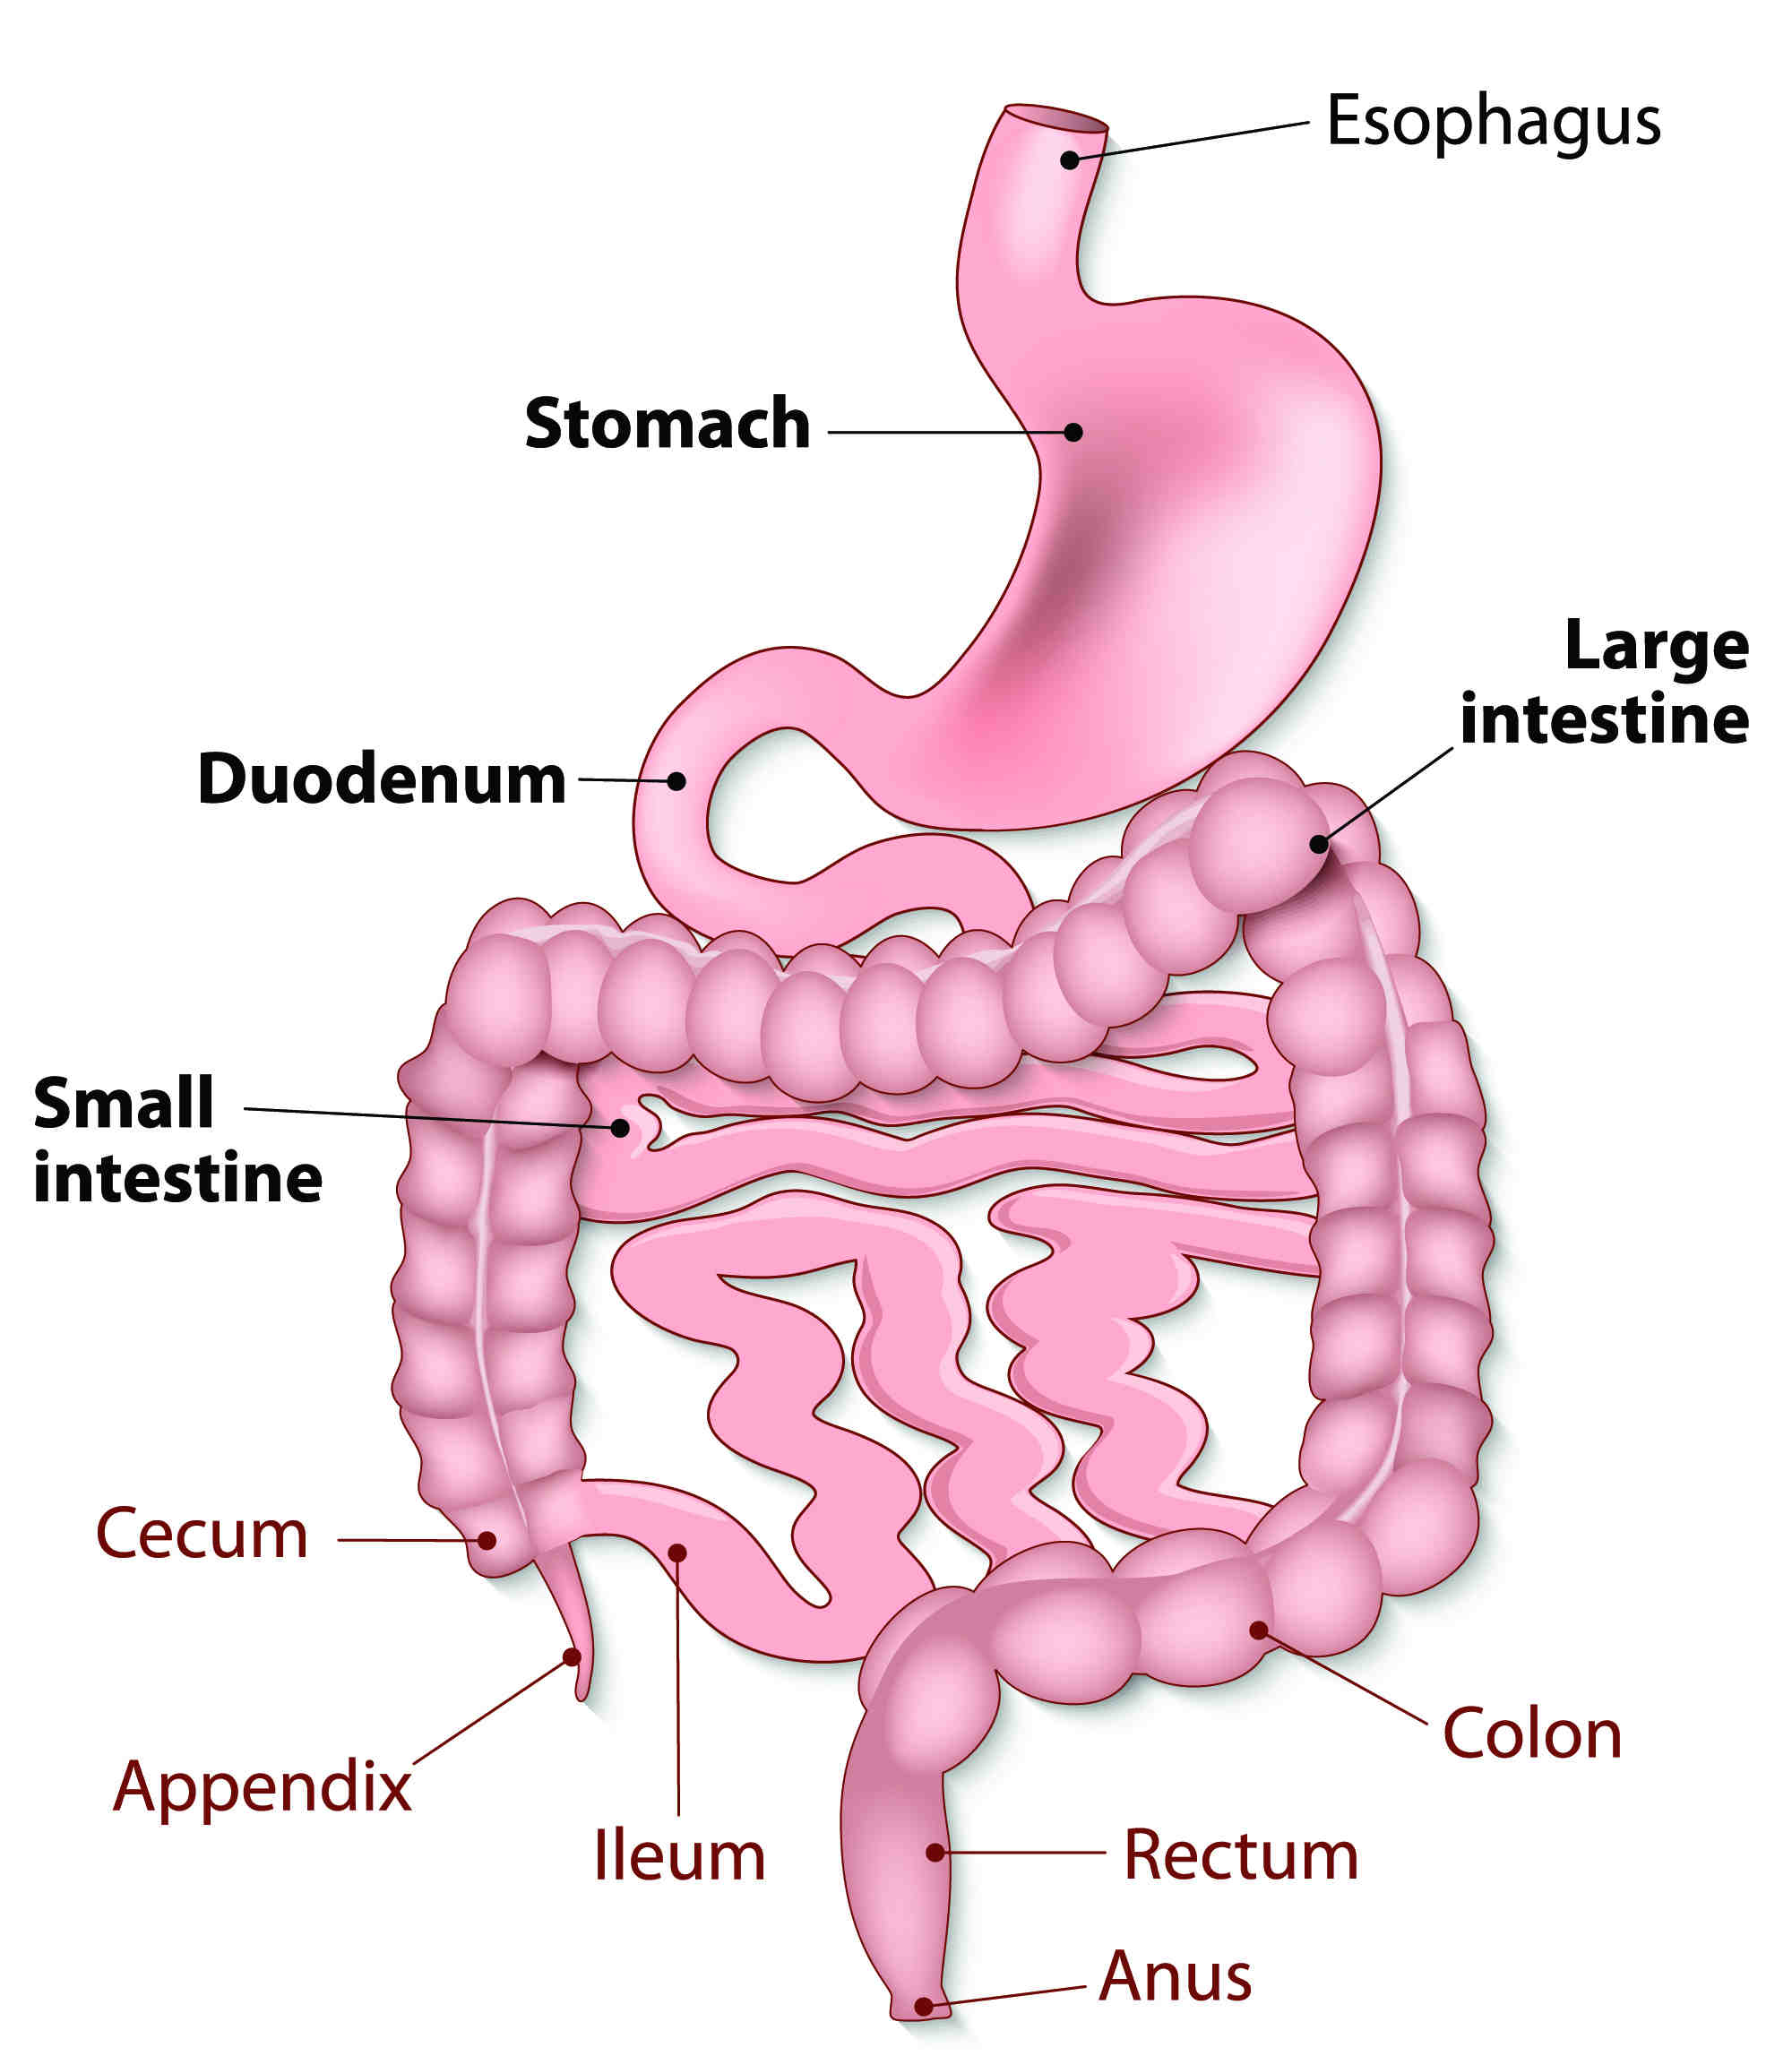 human digestive system is a single tube